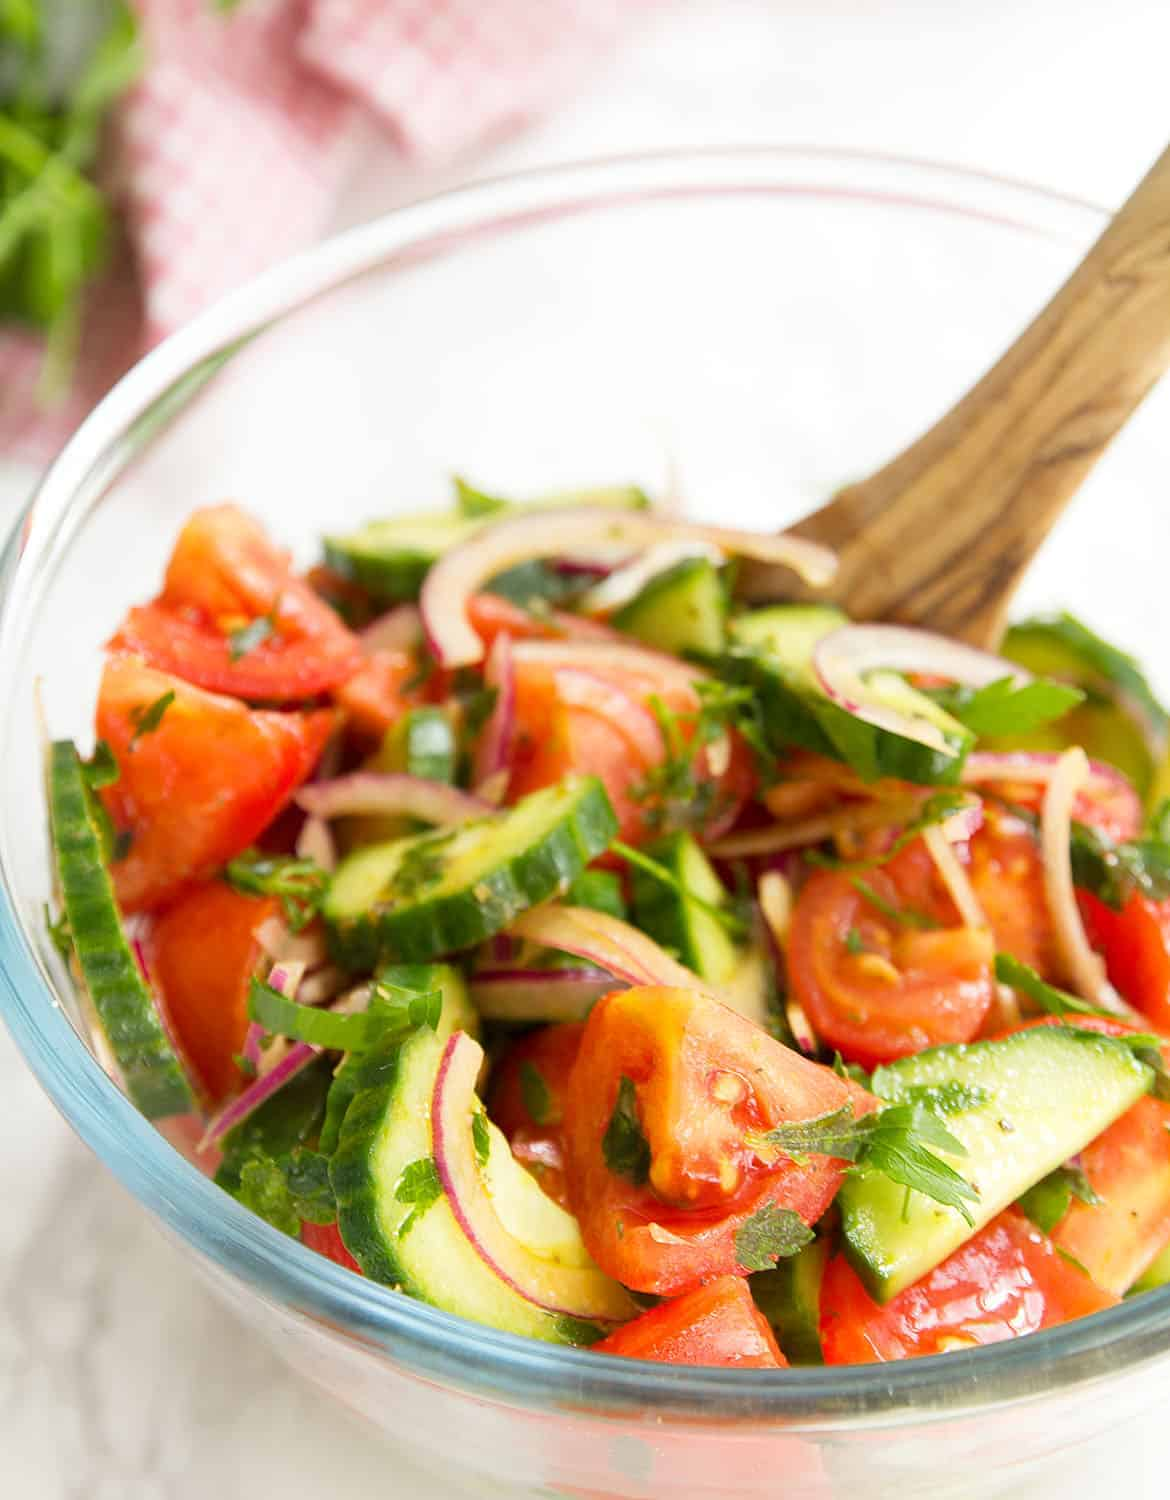 This light and refreshing Italian tomato and cucumber salad is a must. It's packed with flavor and vitamins, it comes together in 5 minutes and makes everyone happy.